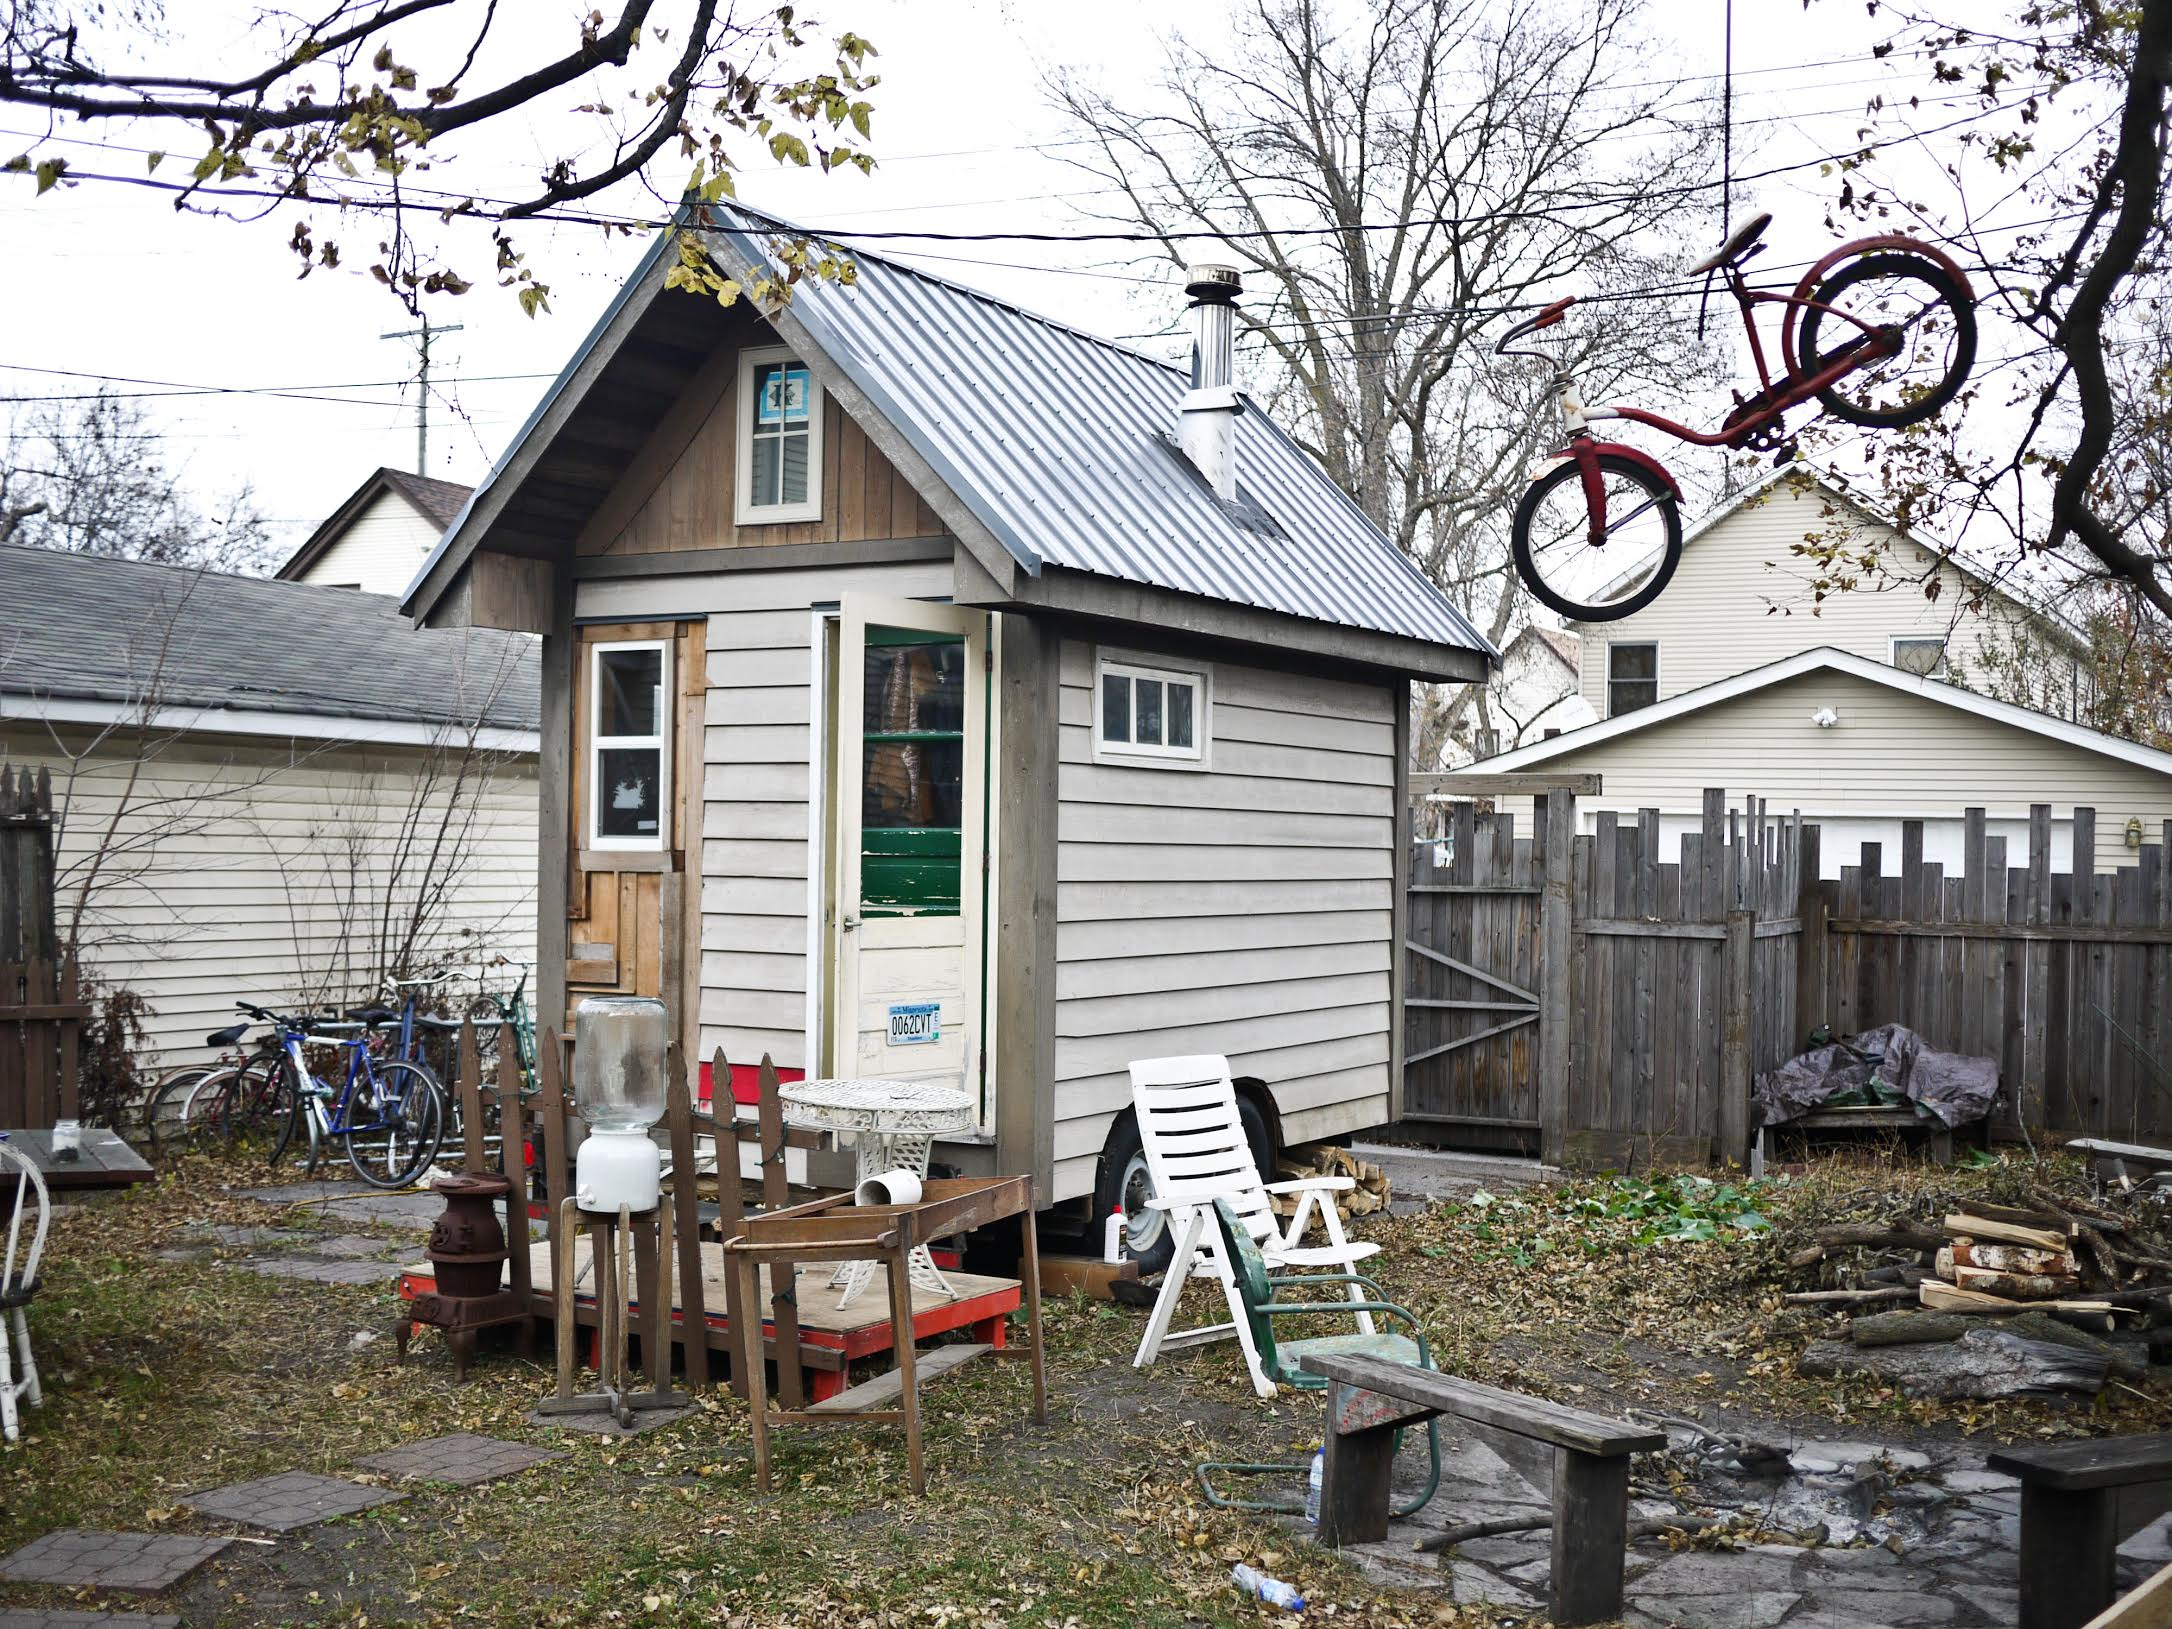 Urban Sweat Lodge: Sauna Culture in Minneapolis